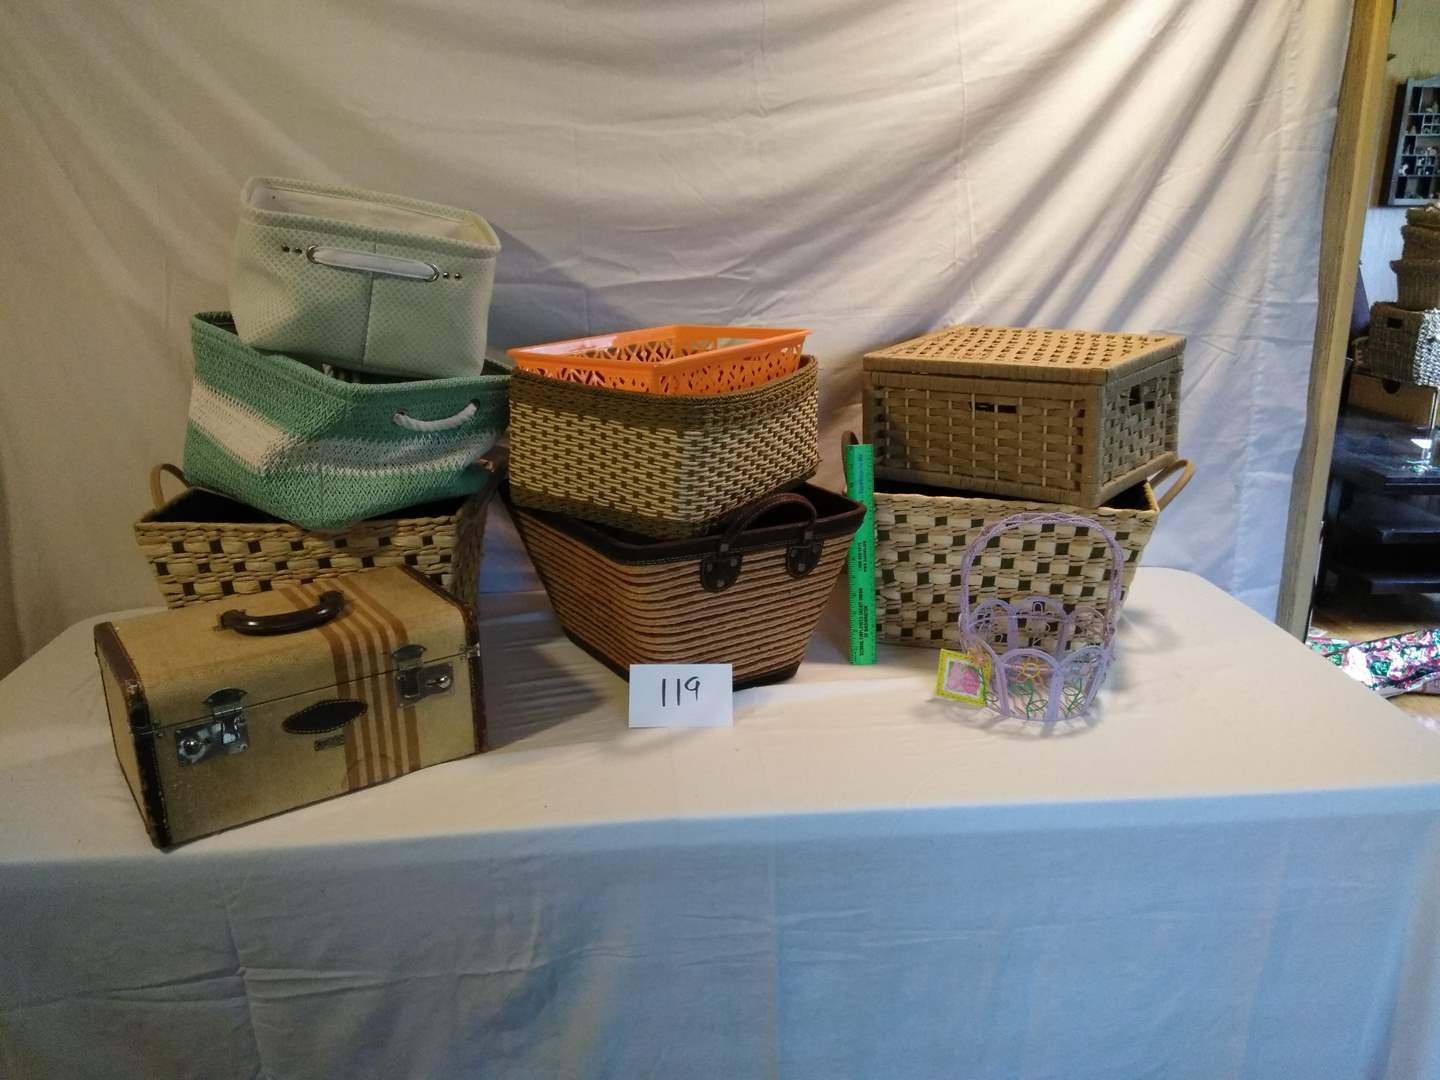 Lot # 119 - Vintage suitcase. Baskets, all sizes (main image)